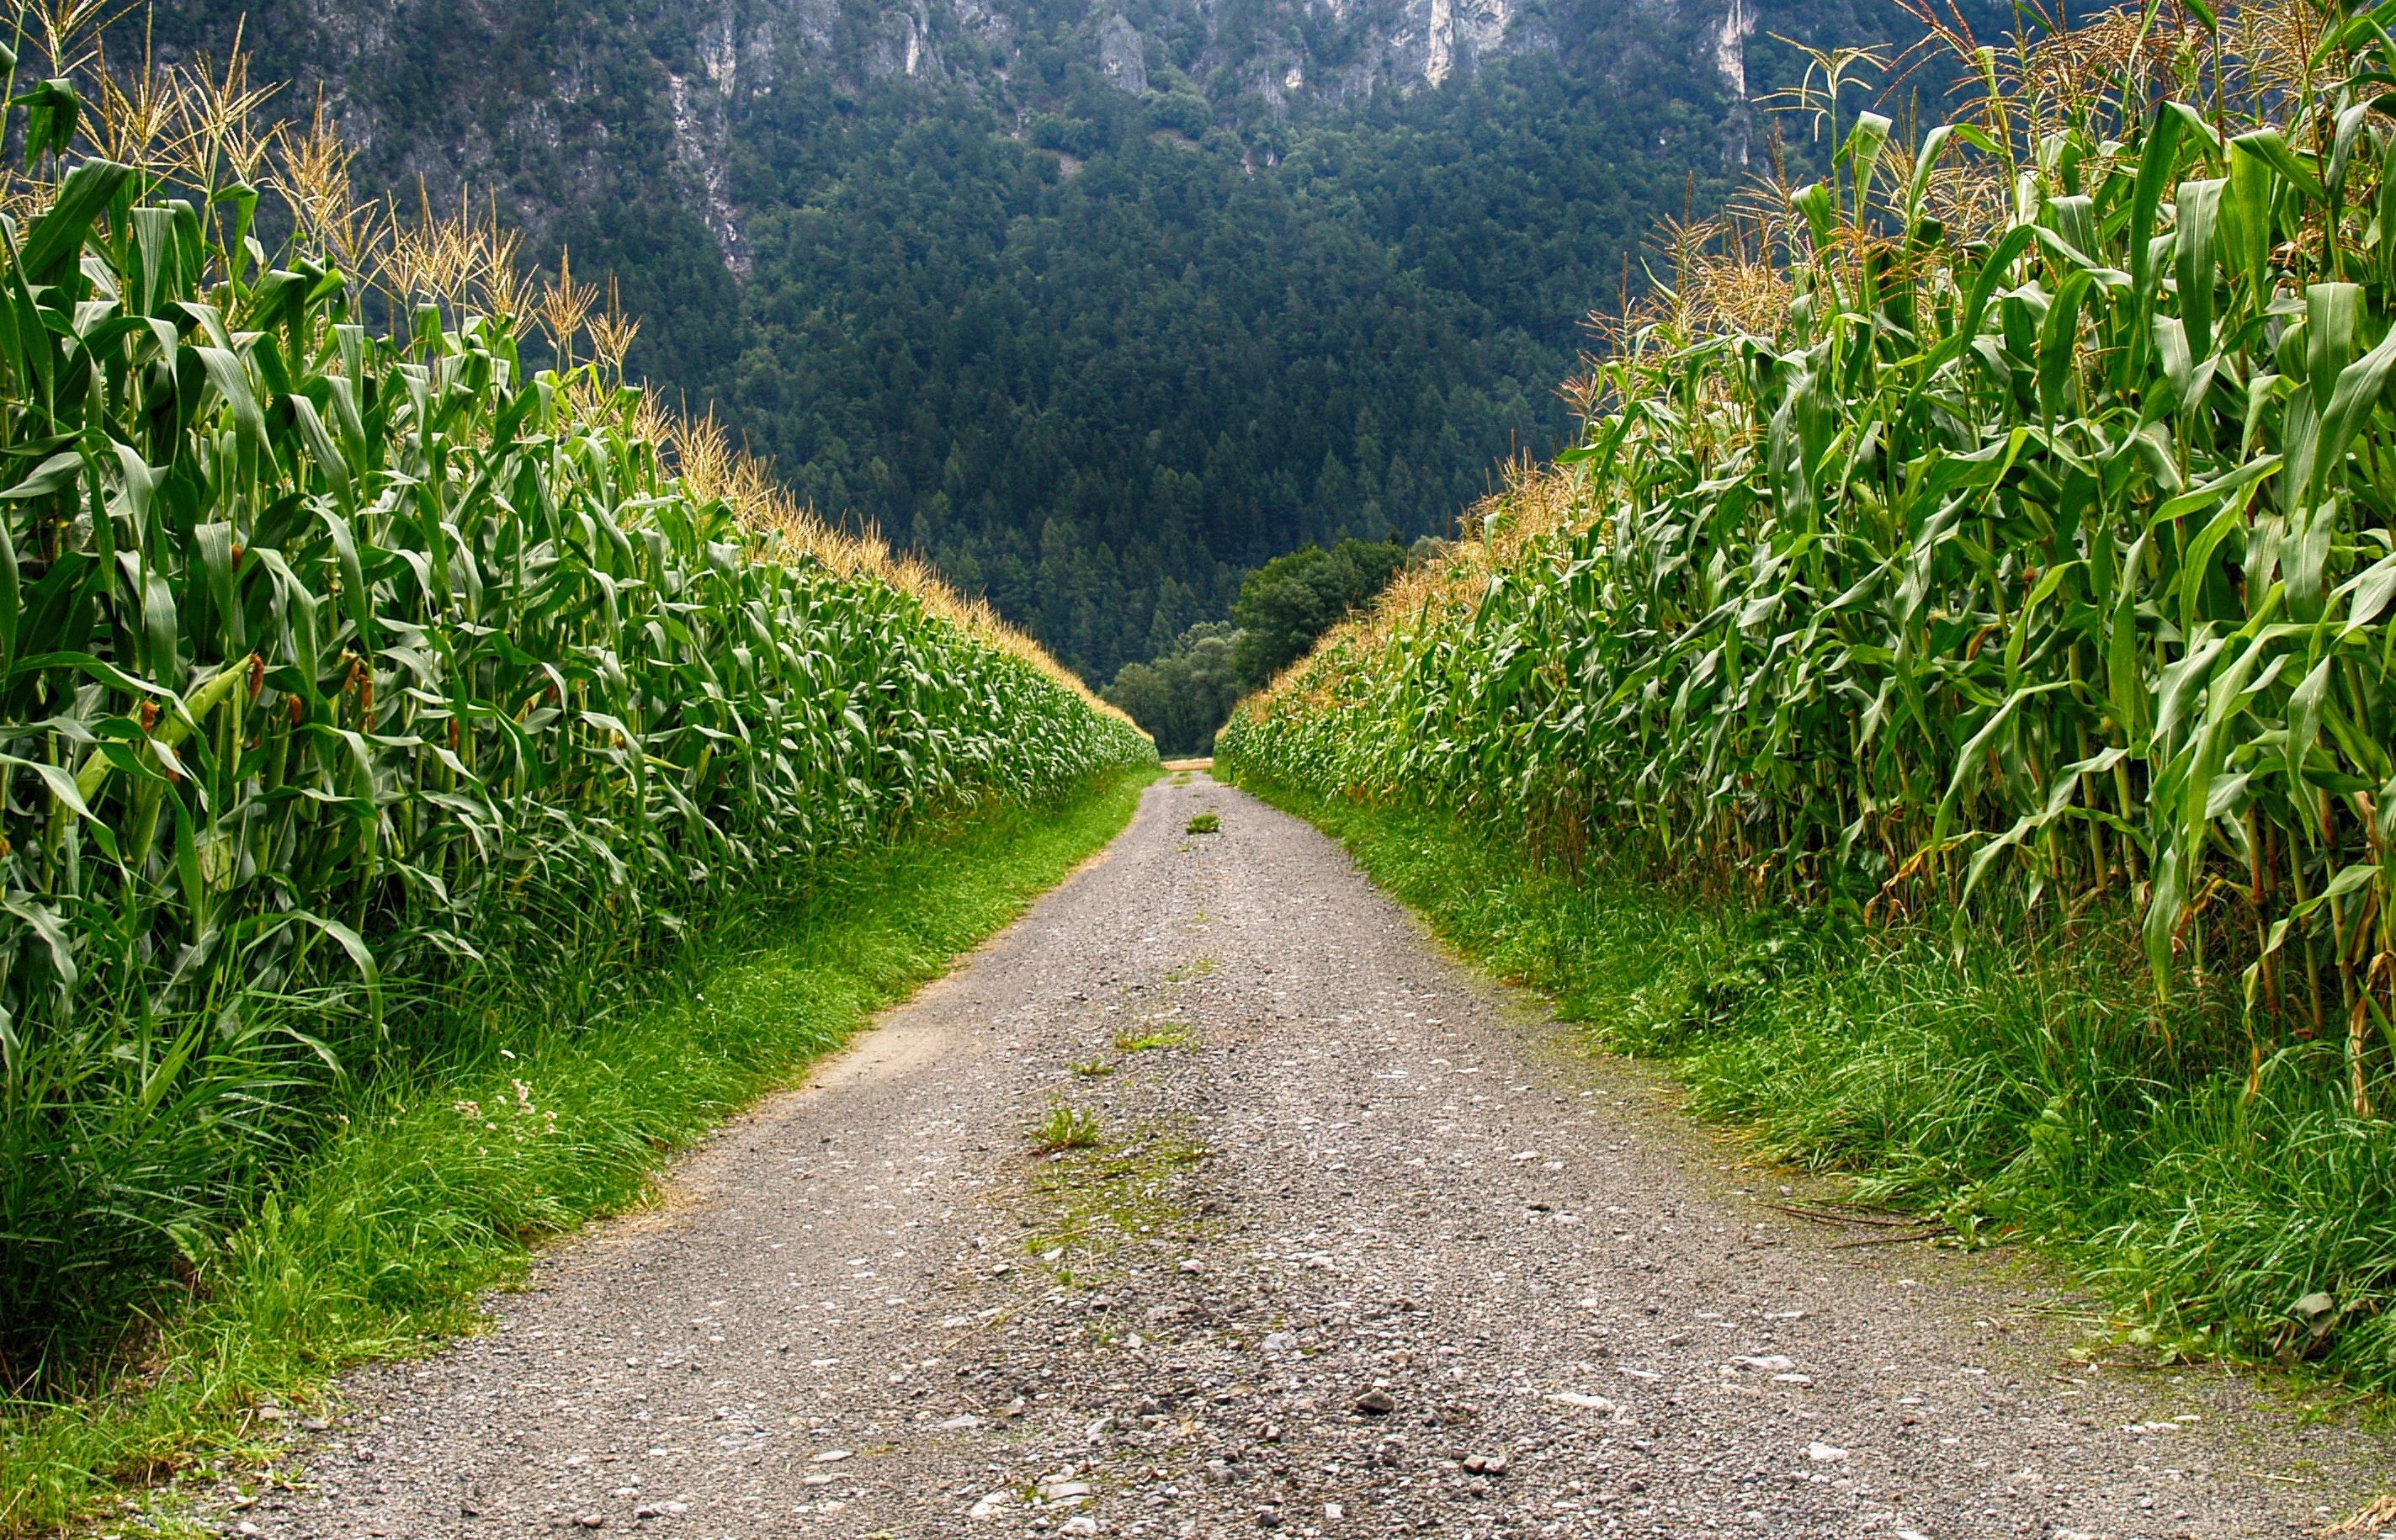 Pathway in middle of corn field photo